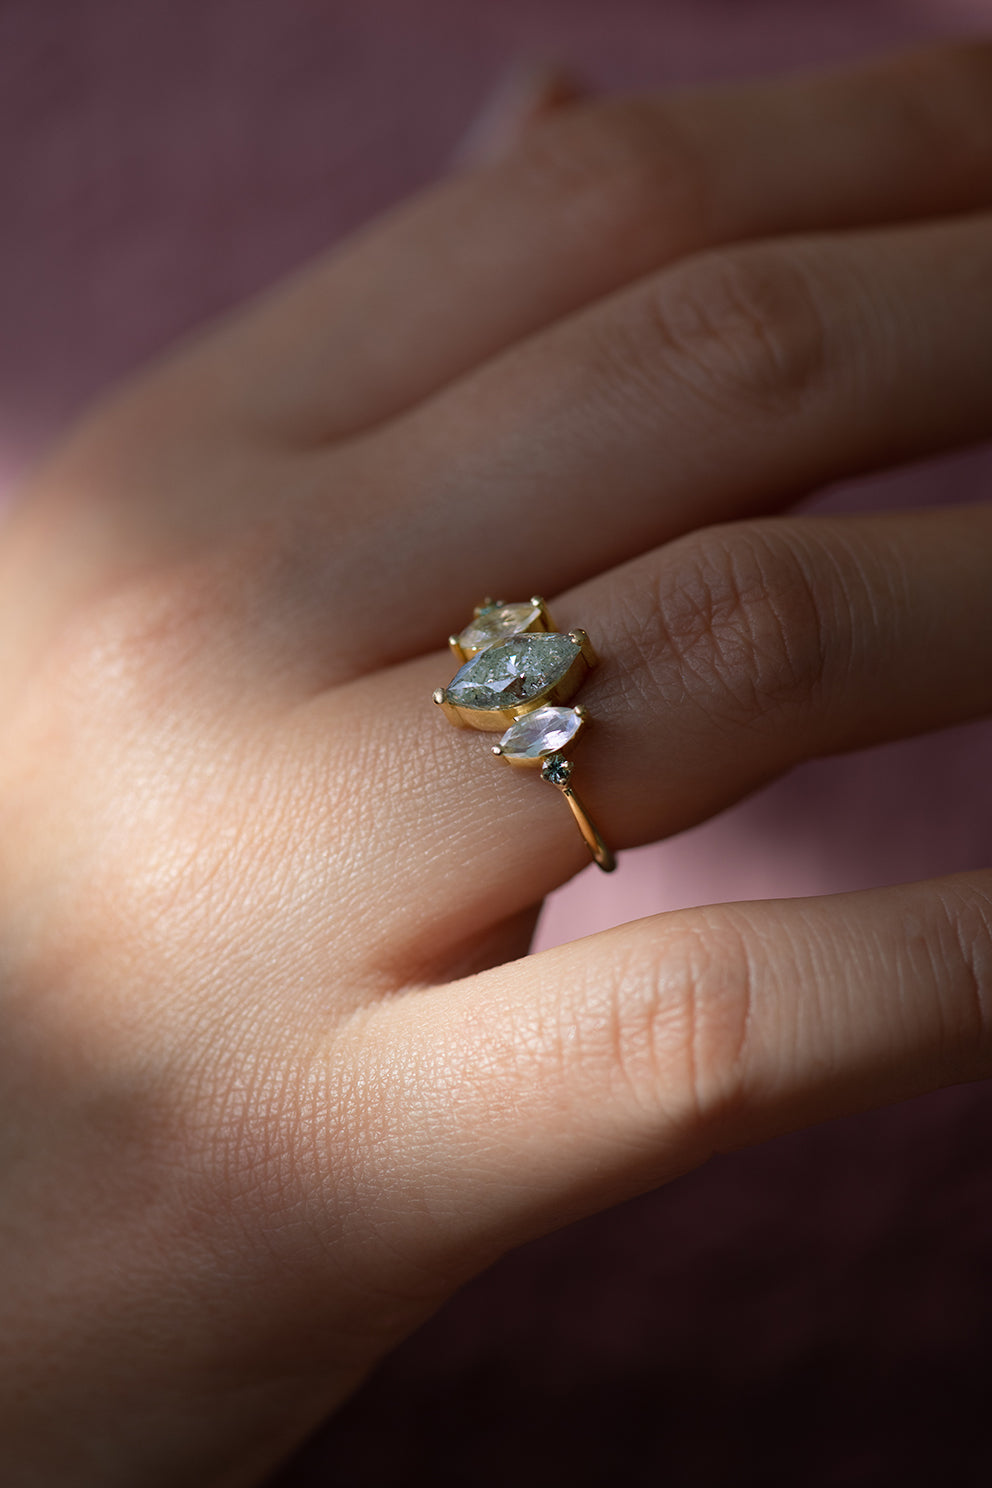 Salt and Pepper Marquise Diamond Ring Up Close in Light Shaft on Hand